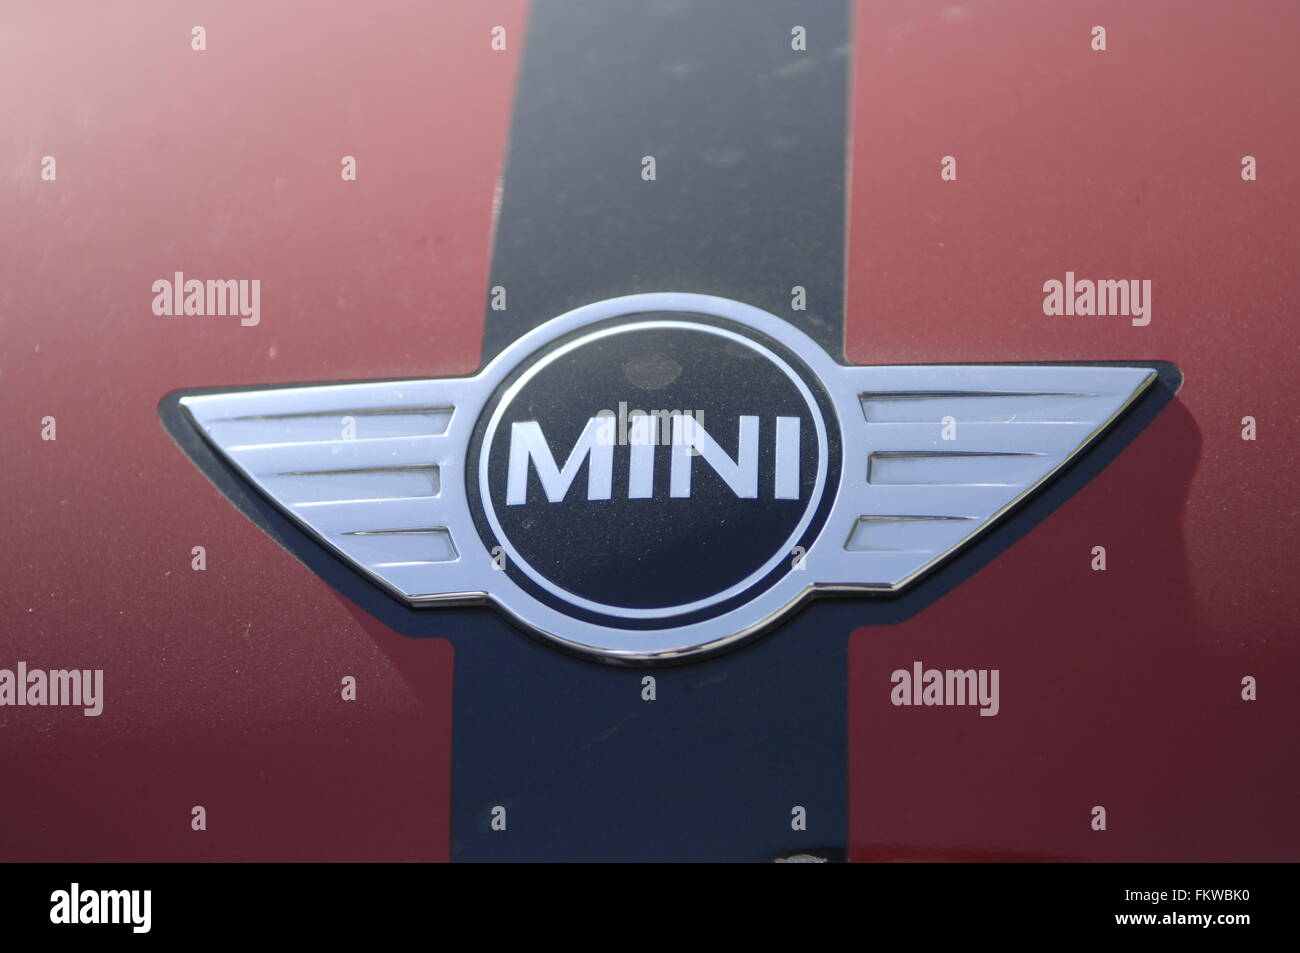 The Mini is a small economy car made by the British Motor Corporation (BMC) and its successors from 1959 until 2000 - Stock Image